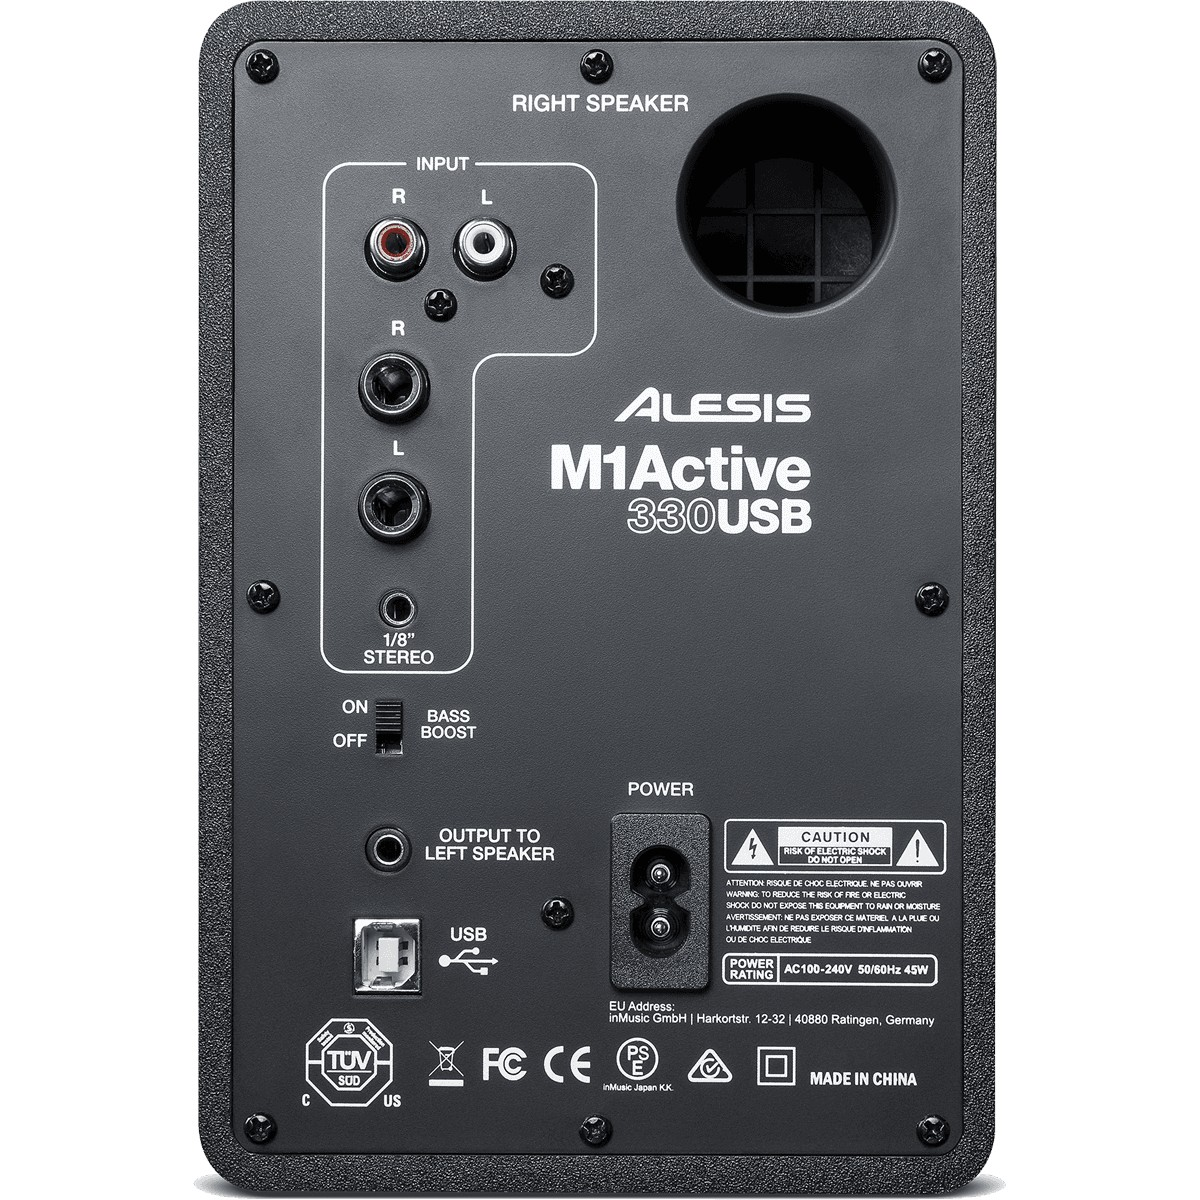 M1ACTIVE330USB Enceinte monitoring amplifiée